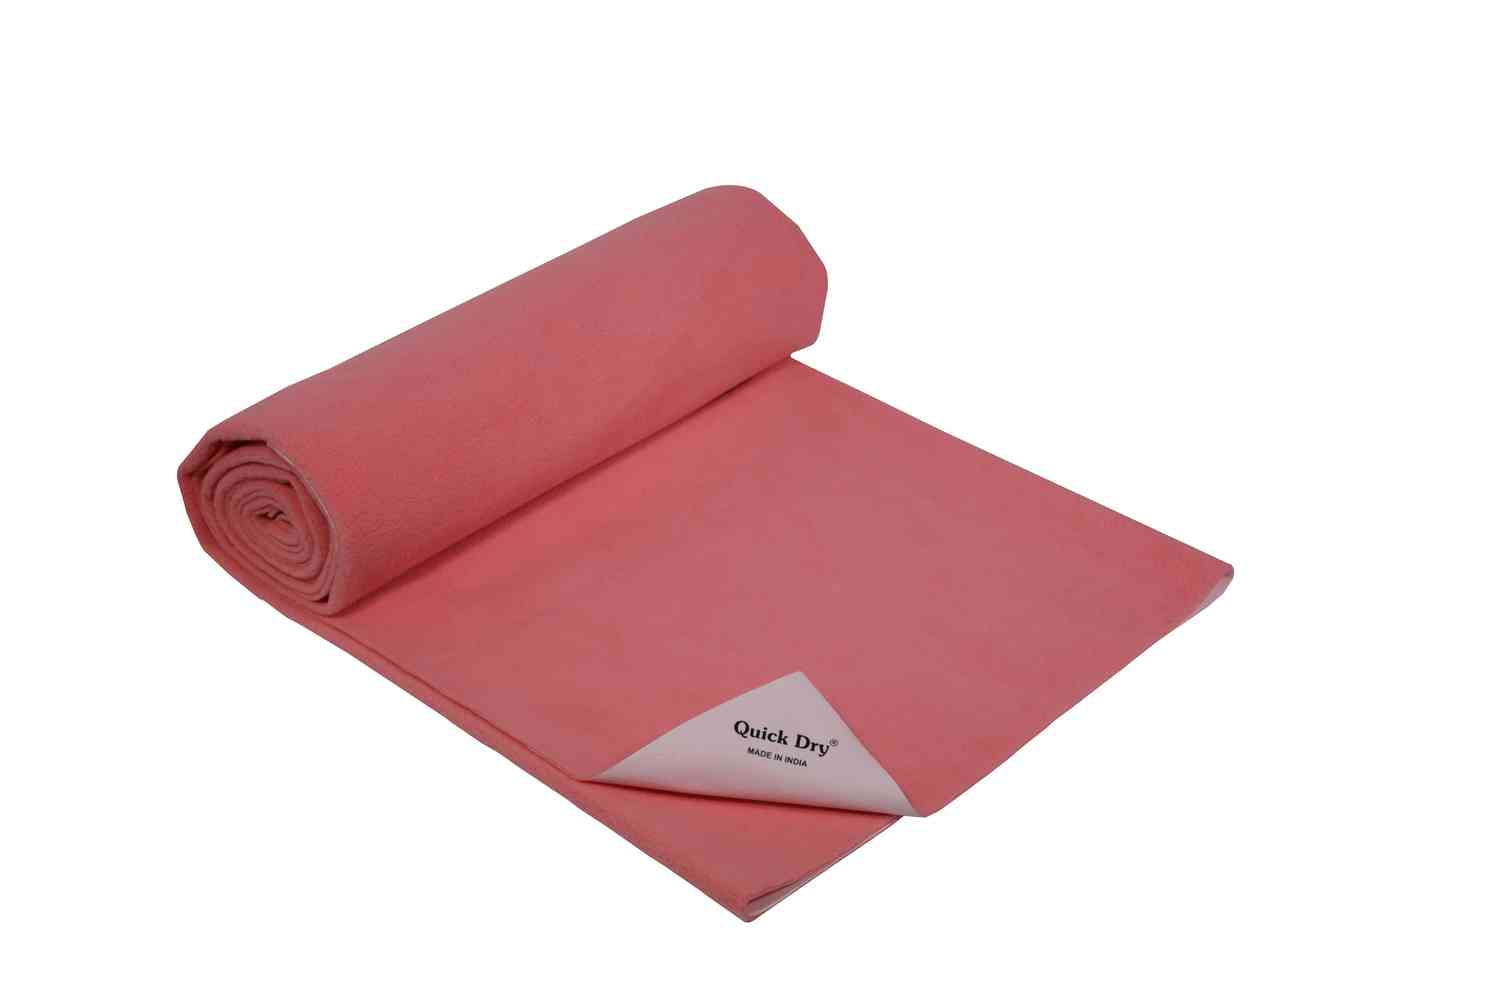 Quick Dry Baby Bed Protector - Plain Rose- Large - 140 X 100 Cms